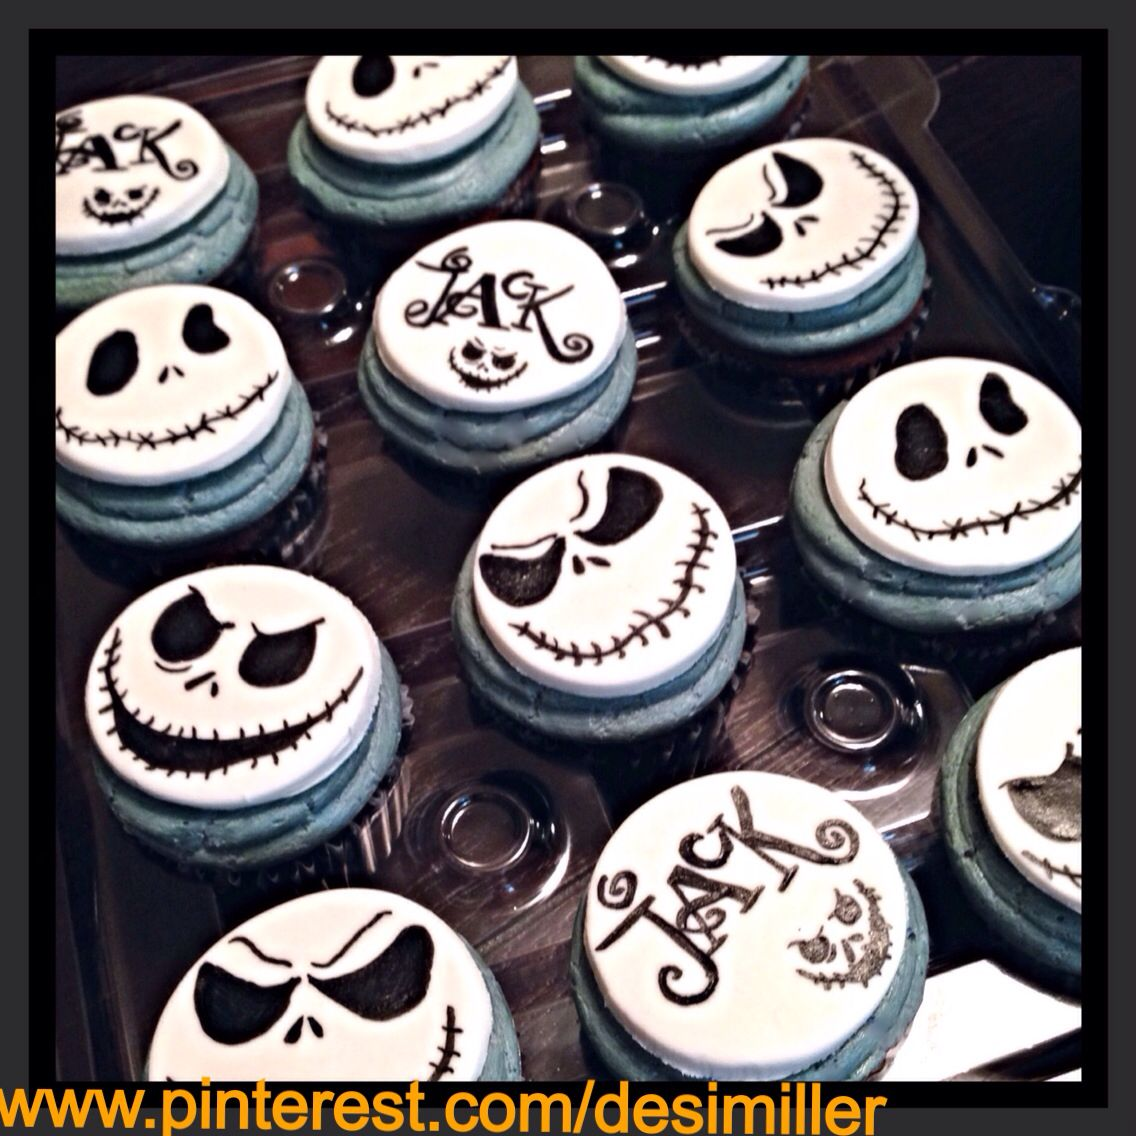 Nightmare Before Christmas Cupcakes With Images Nightmare